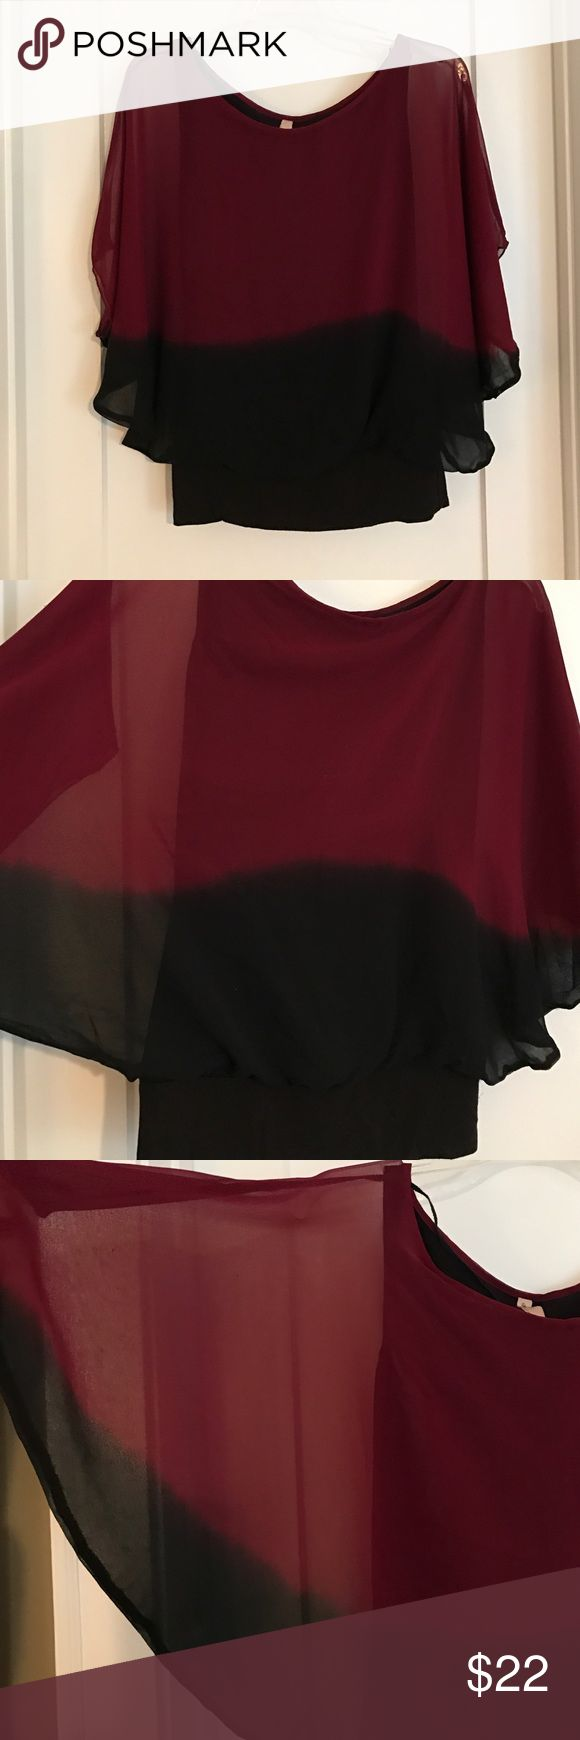 Bailey 44 Top Bailey 44 Top.  Burgundy and black sheer top with dark fitted cami. Banded waist. Great condition. Bailey 44 Tops